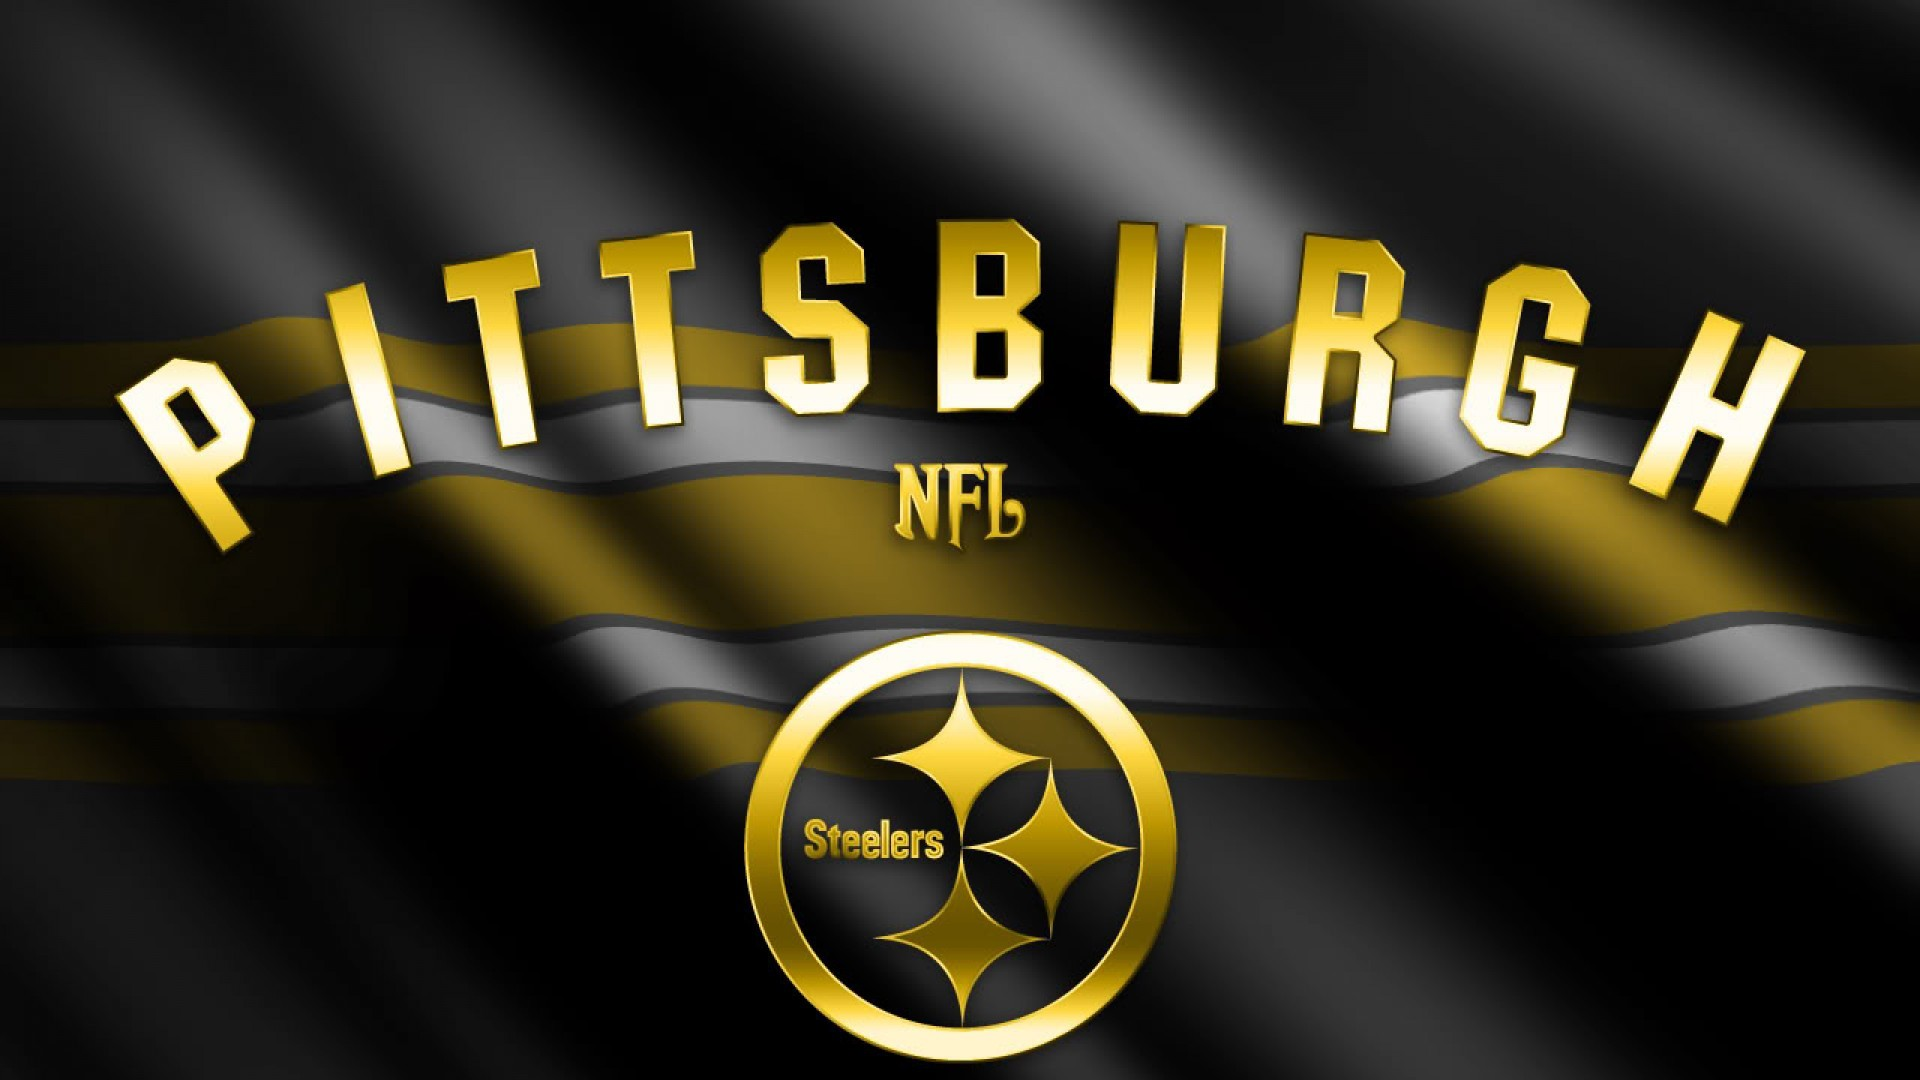 Patriots Iphone Wallpaper Pittsburgh Steelers Wallpapers 60 Images